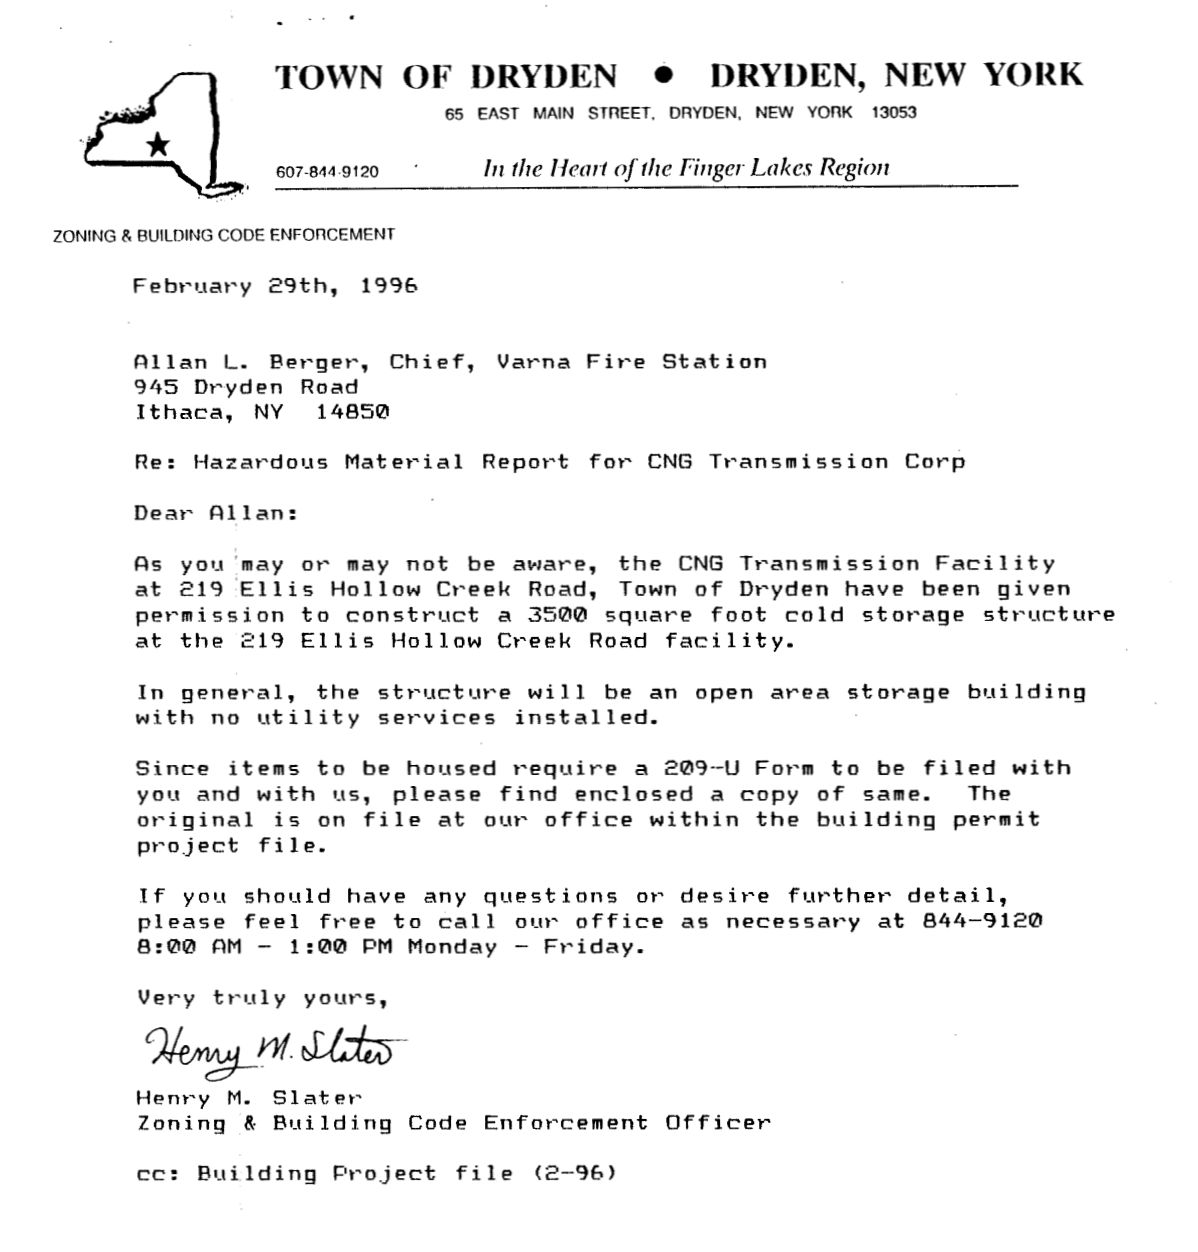 Cng transmission corp hazardous materials report form circa 1995 download a pdf of the following document publicscrutiny Choice Image